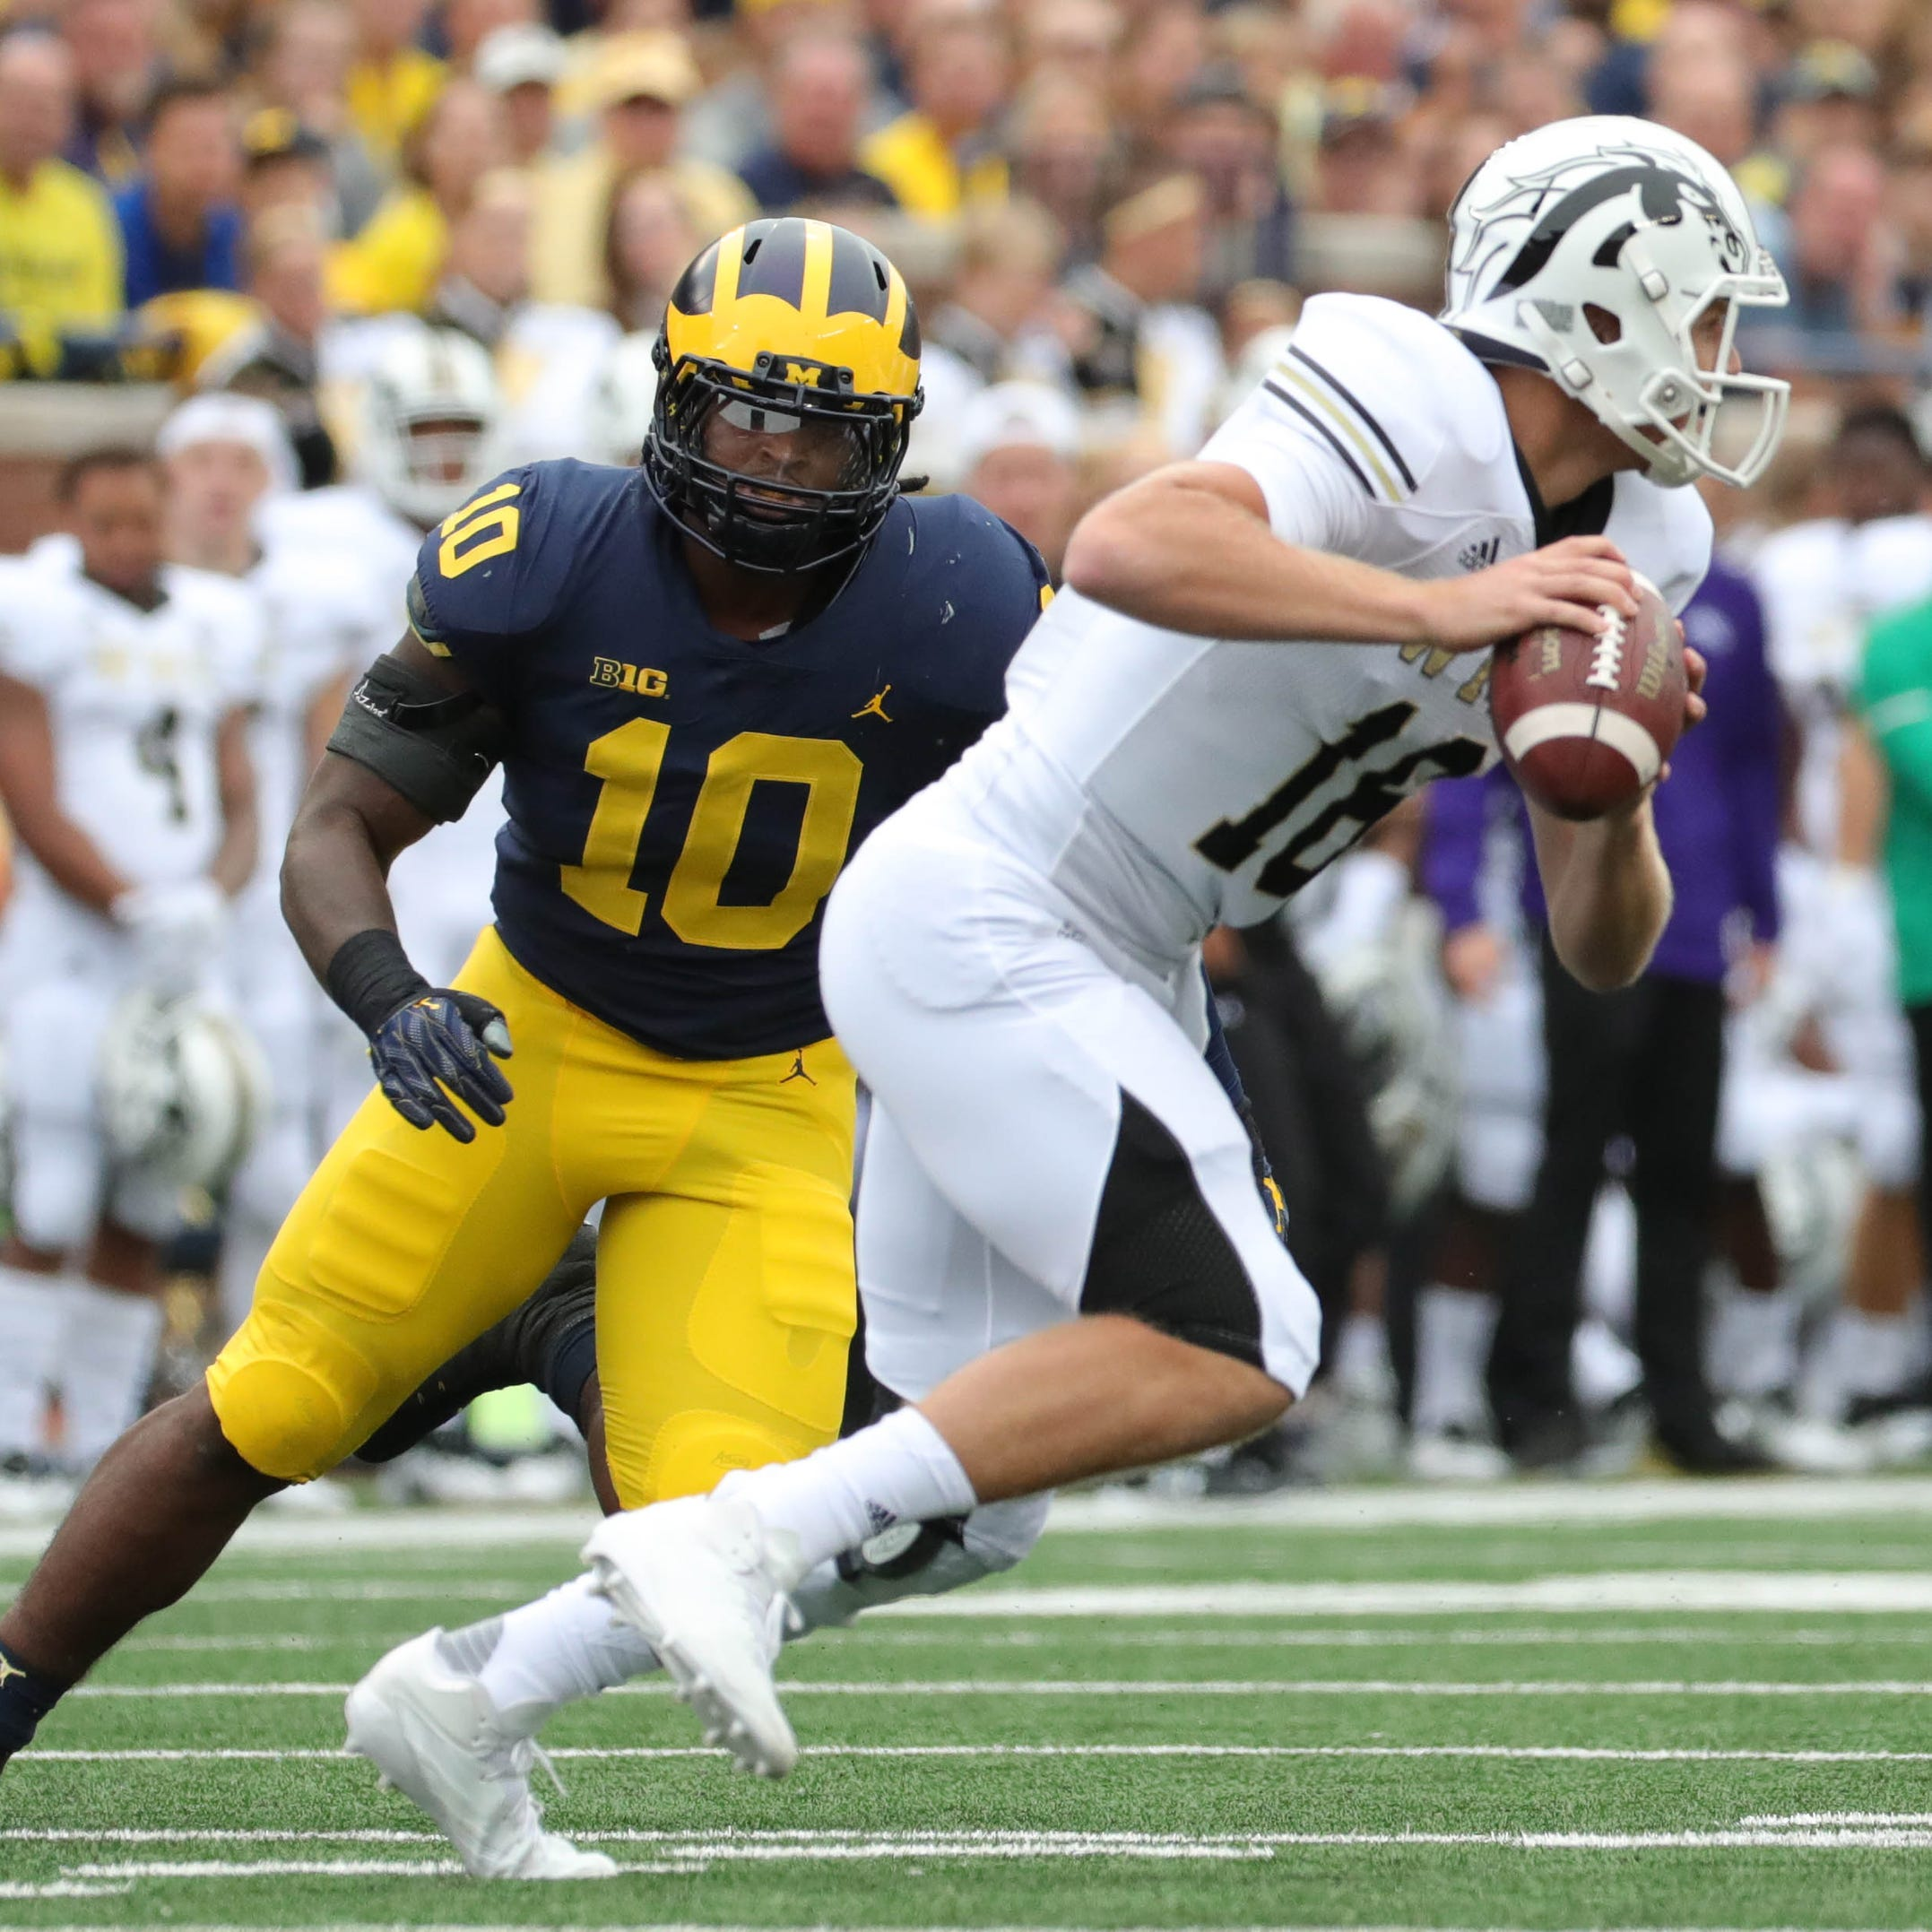 Michigan's Devin Bush Jr., MSU's Kenny Willekes earn All-America honors